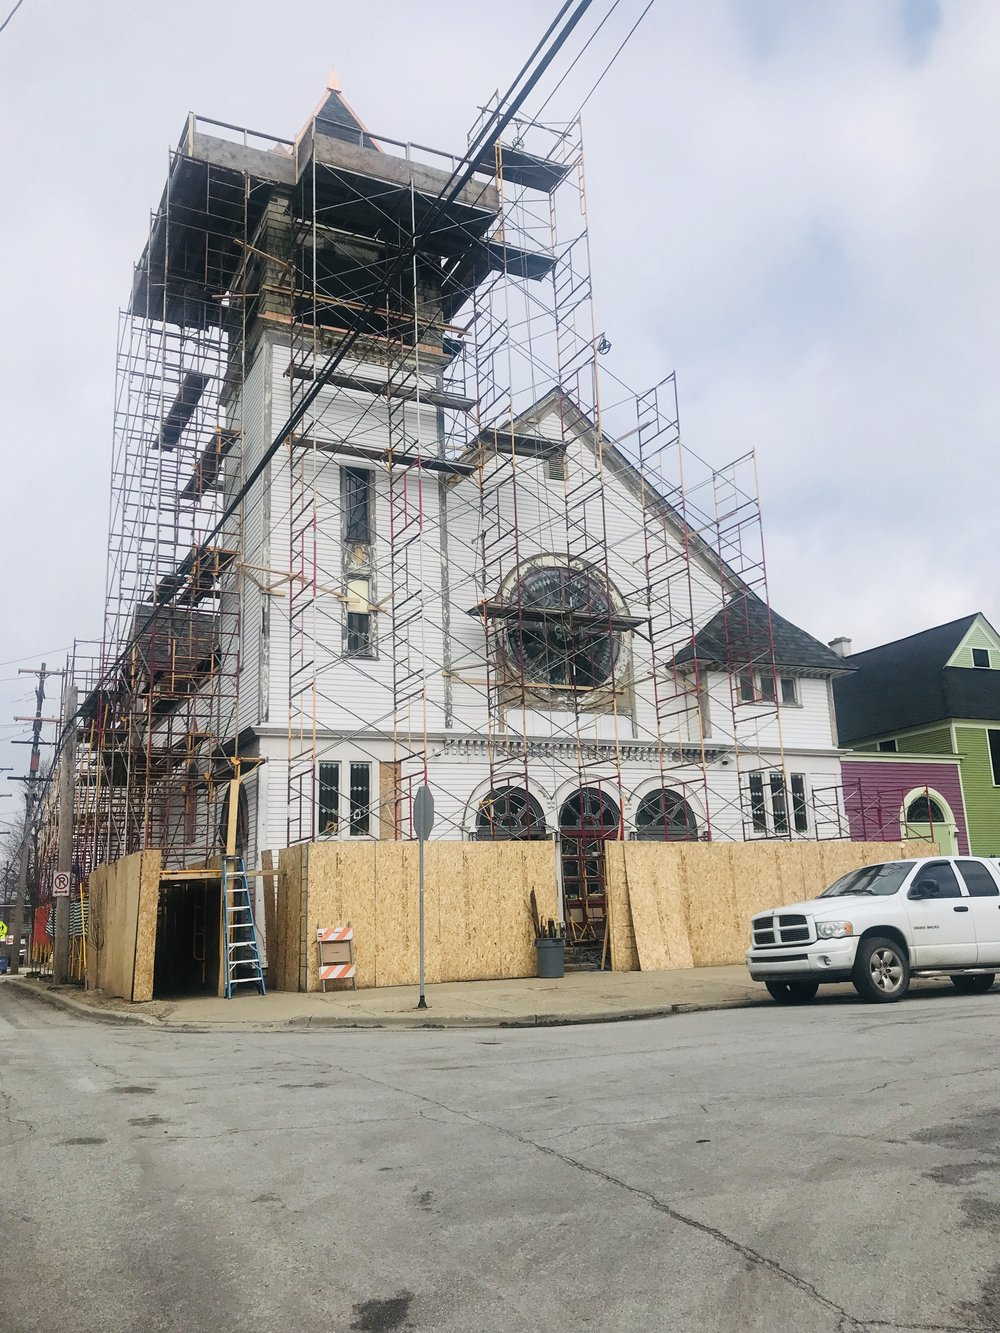 March 2019, the new painted siding is installed on the exterior..